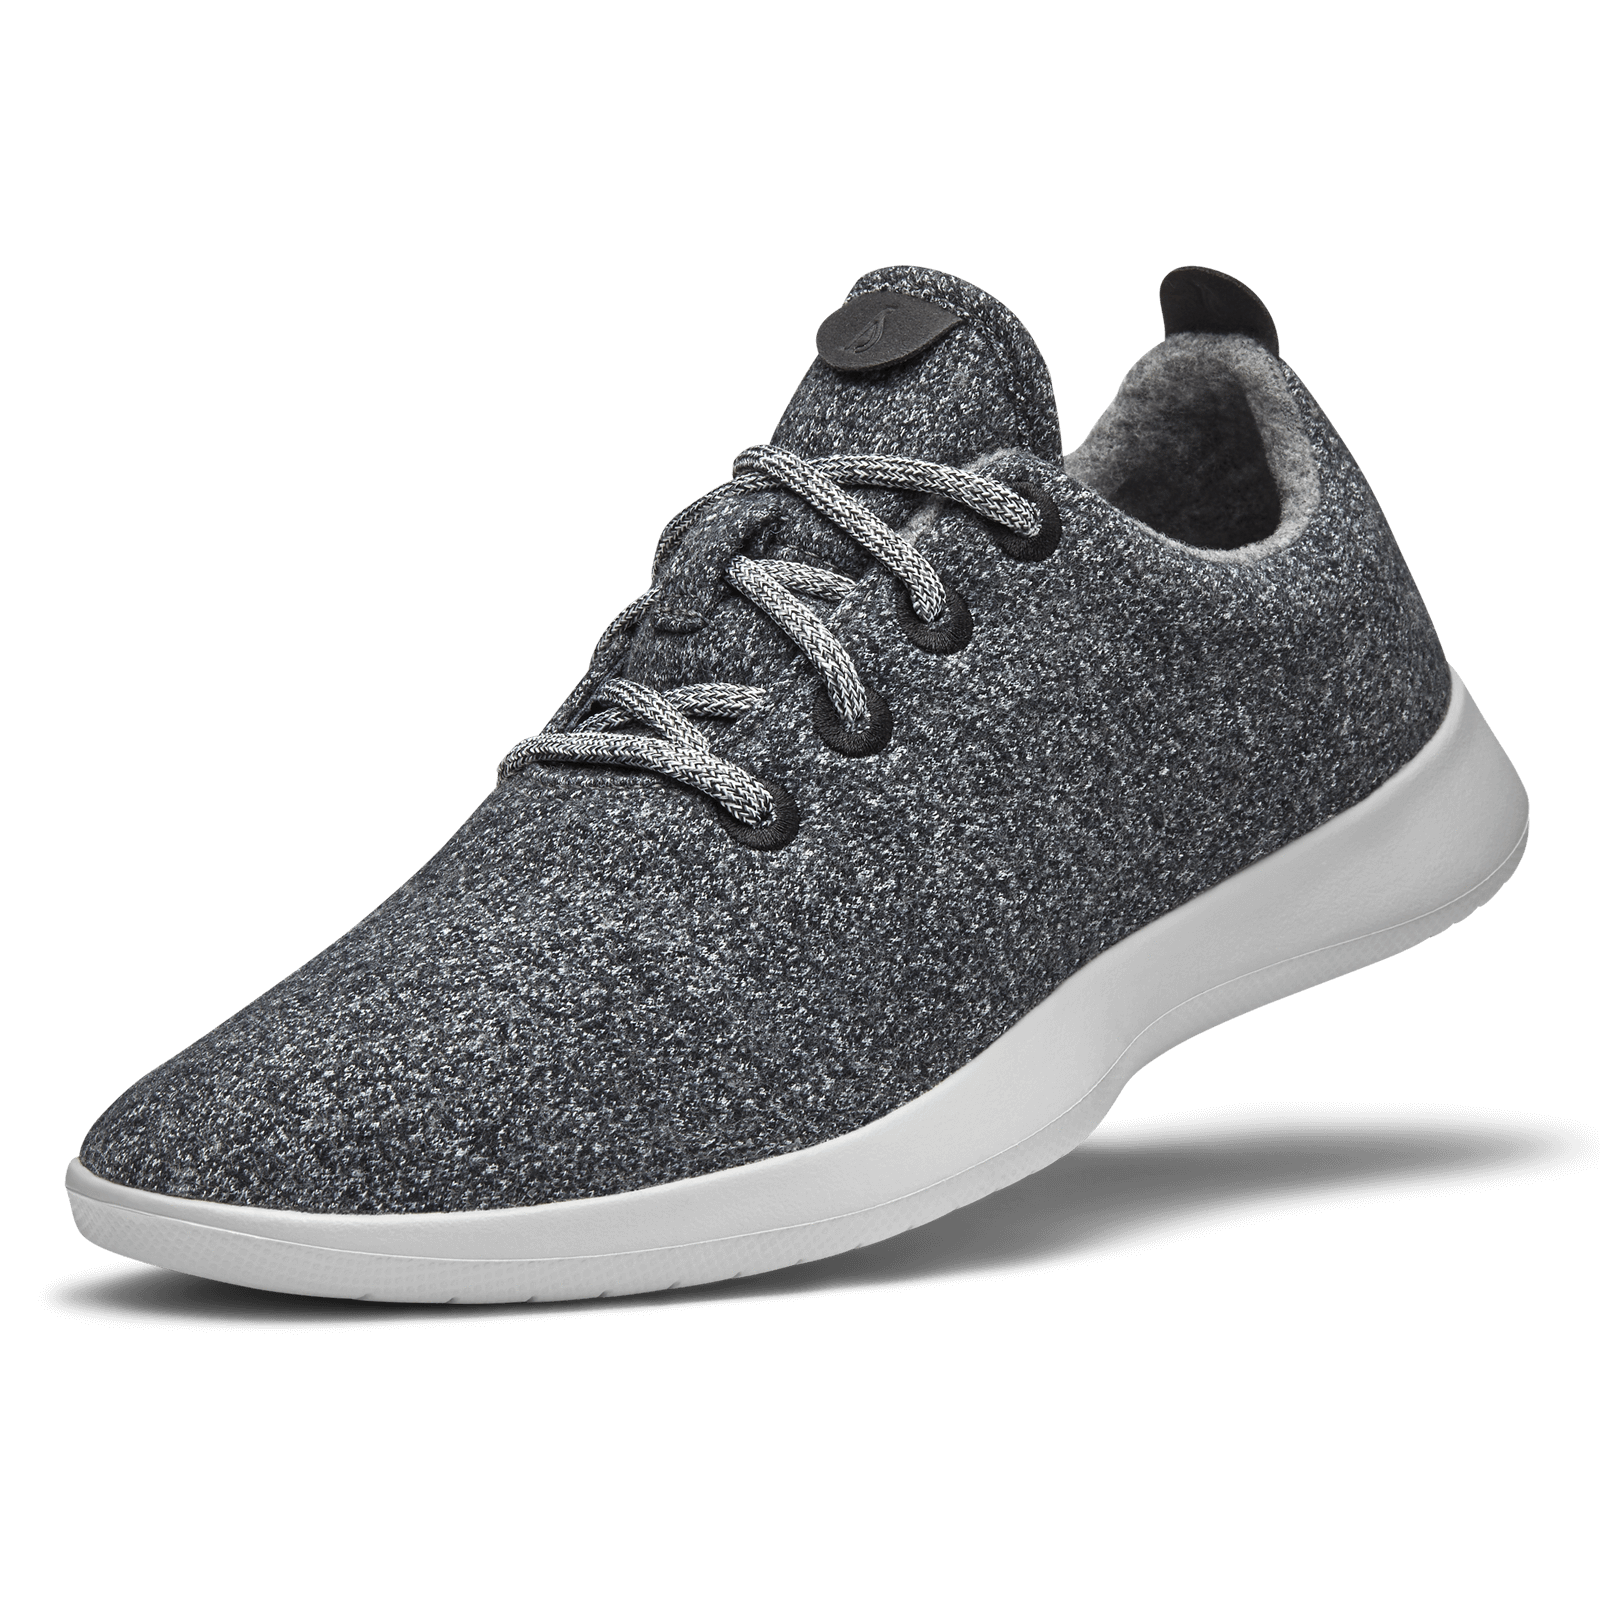 Allbirds Wool Sneakers